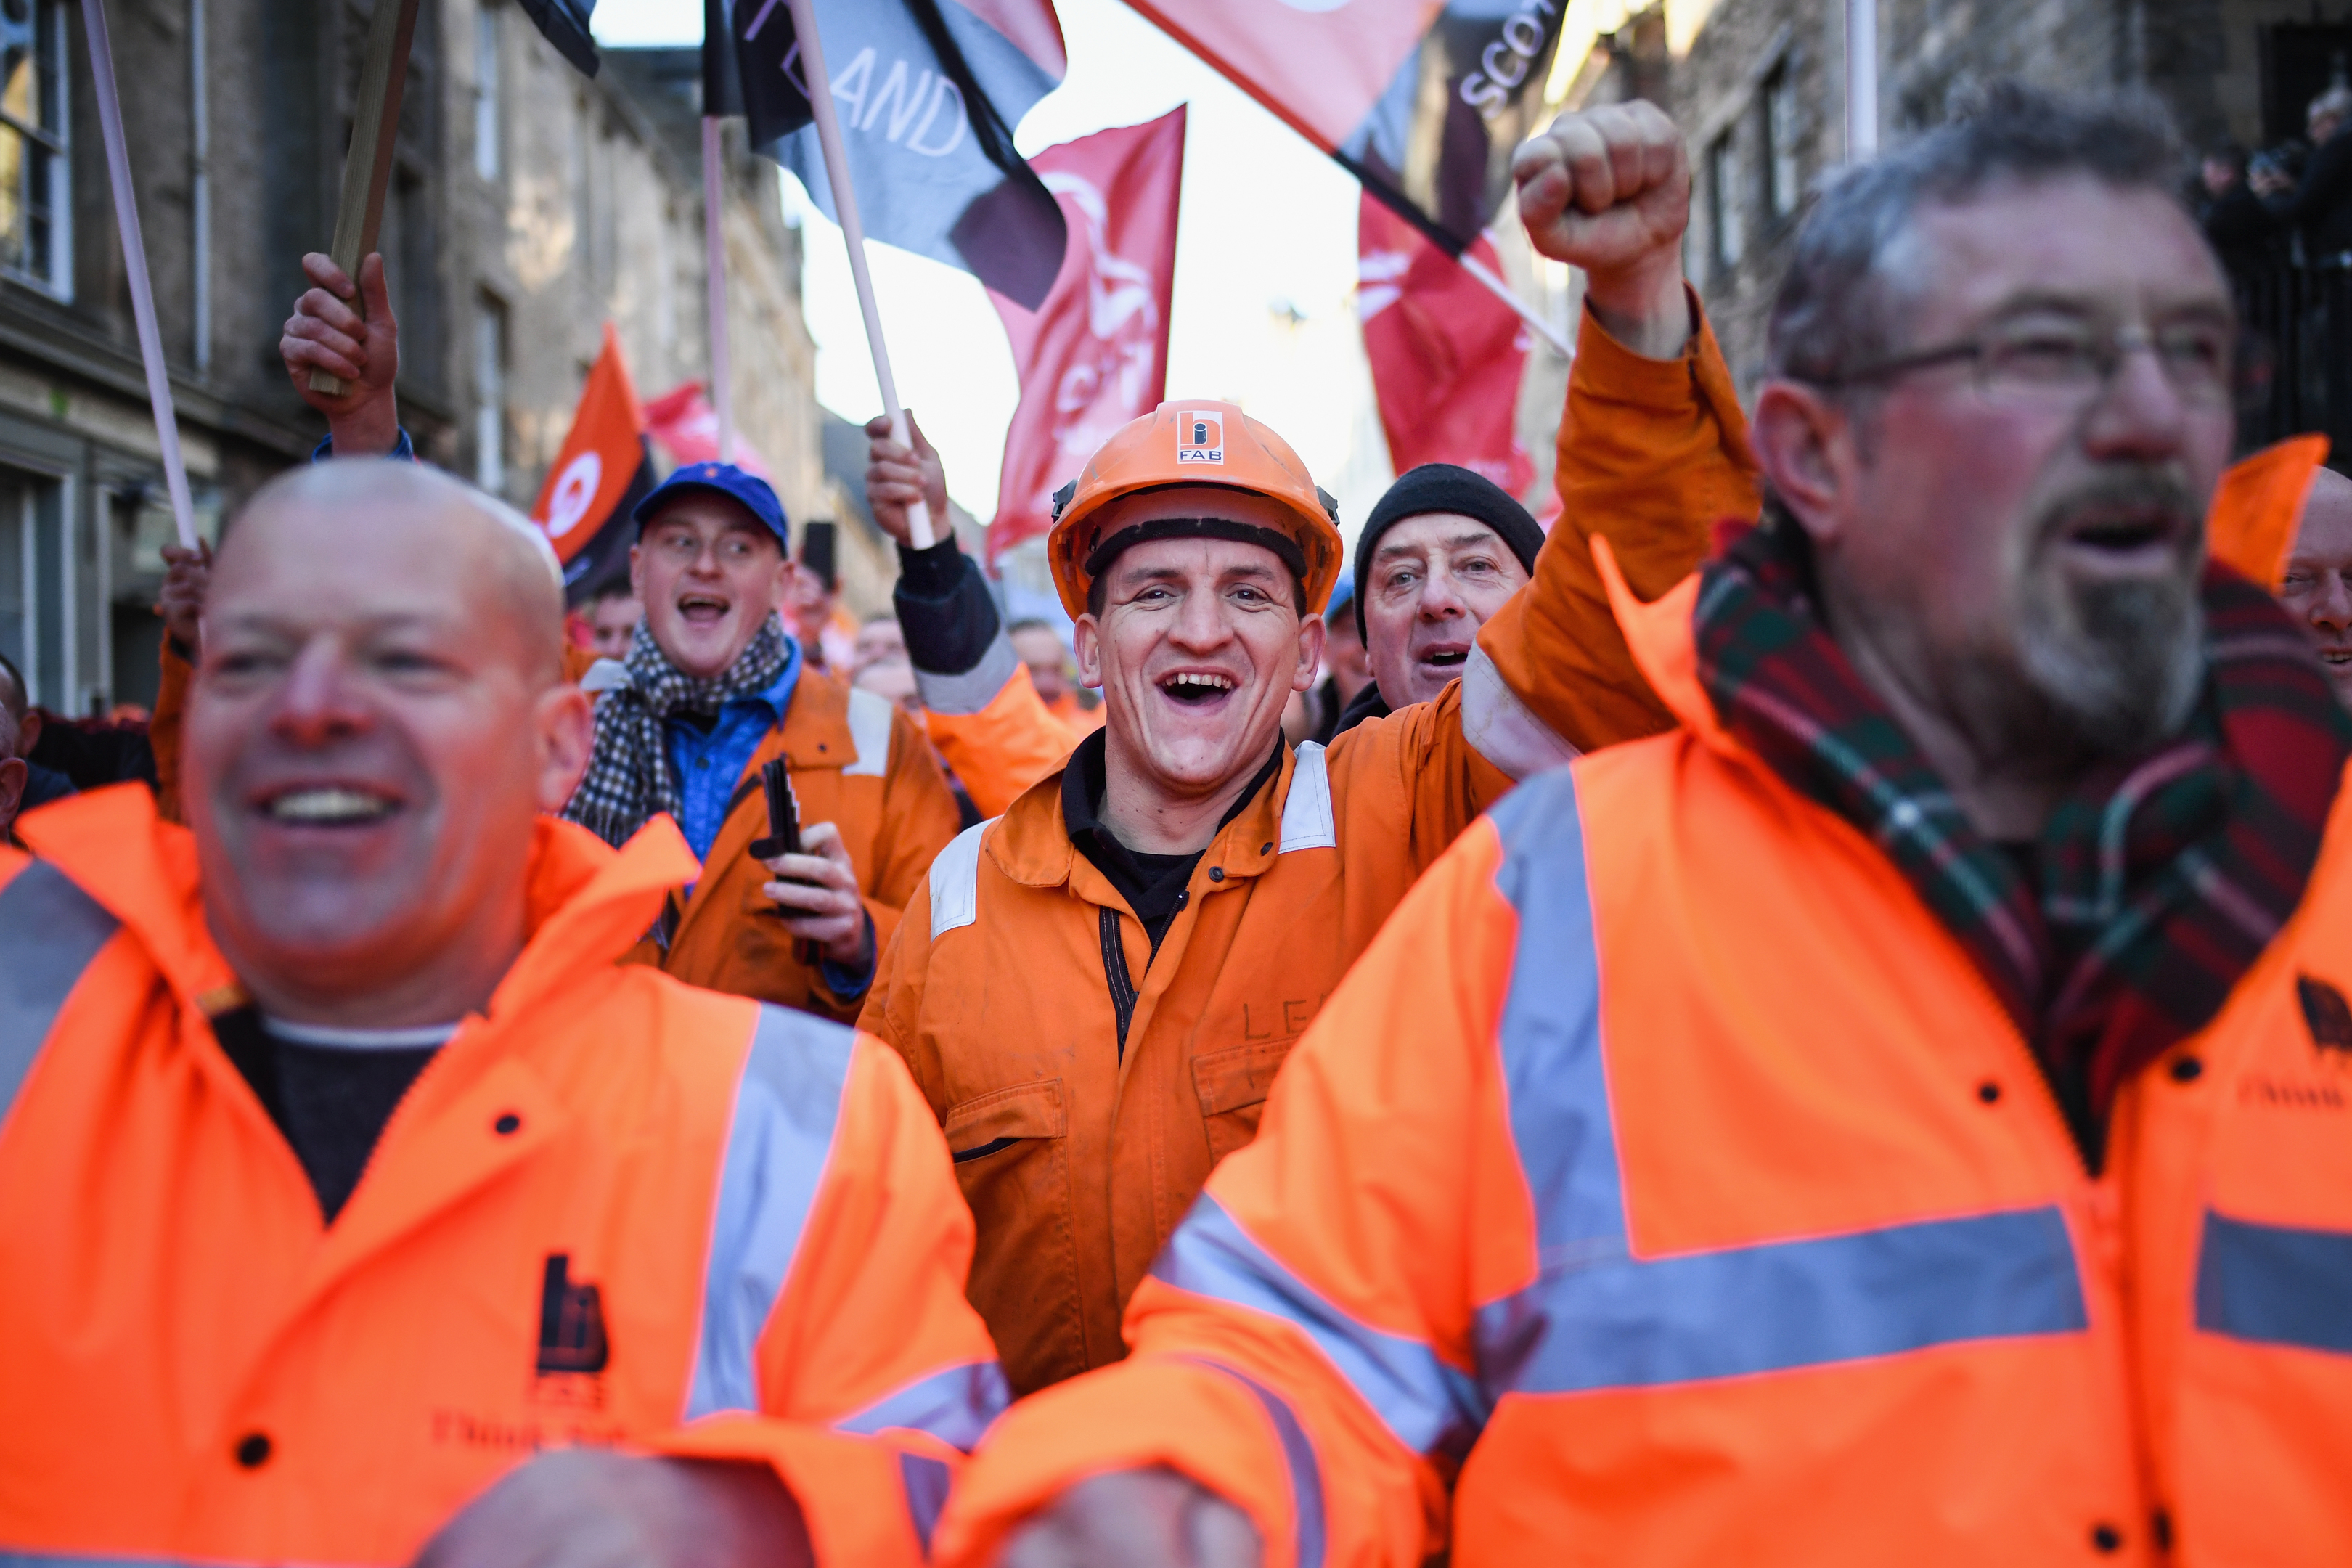 BiFab workers marching on the Scottish Parliament